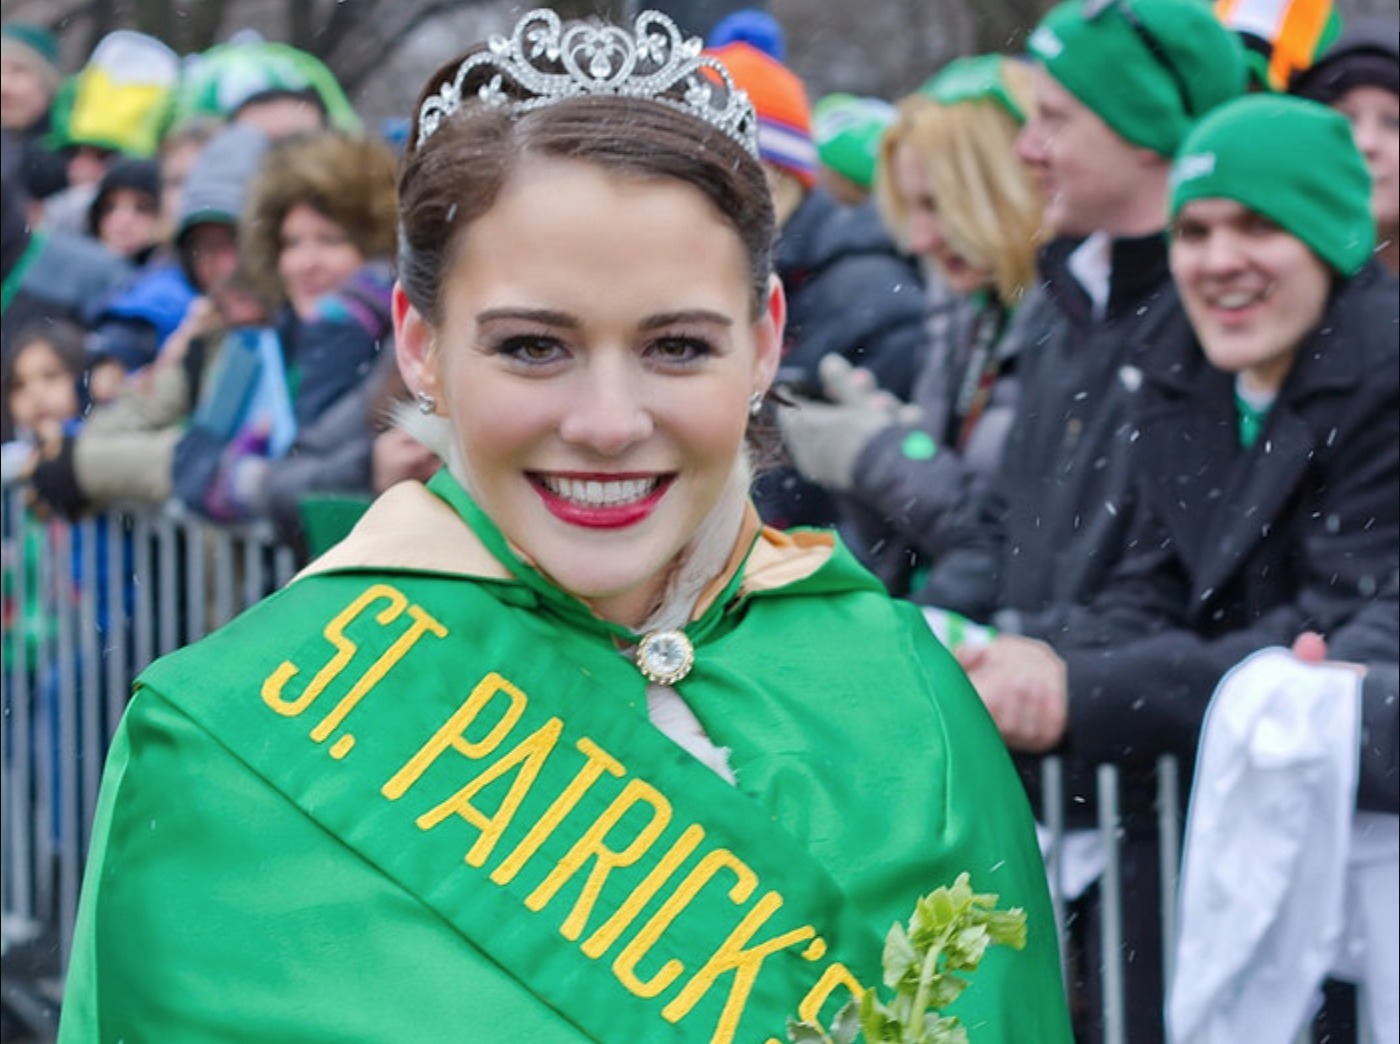 Senate President John Cullerton (D-Chicago) is running his second cousin, former St. Patrick's Day Parade Queen Bridget Fitzgerald, for a west suburban state senate seat.